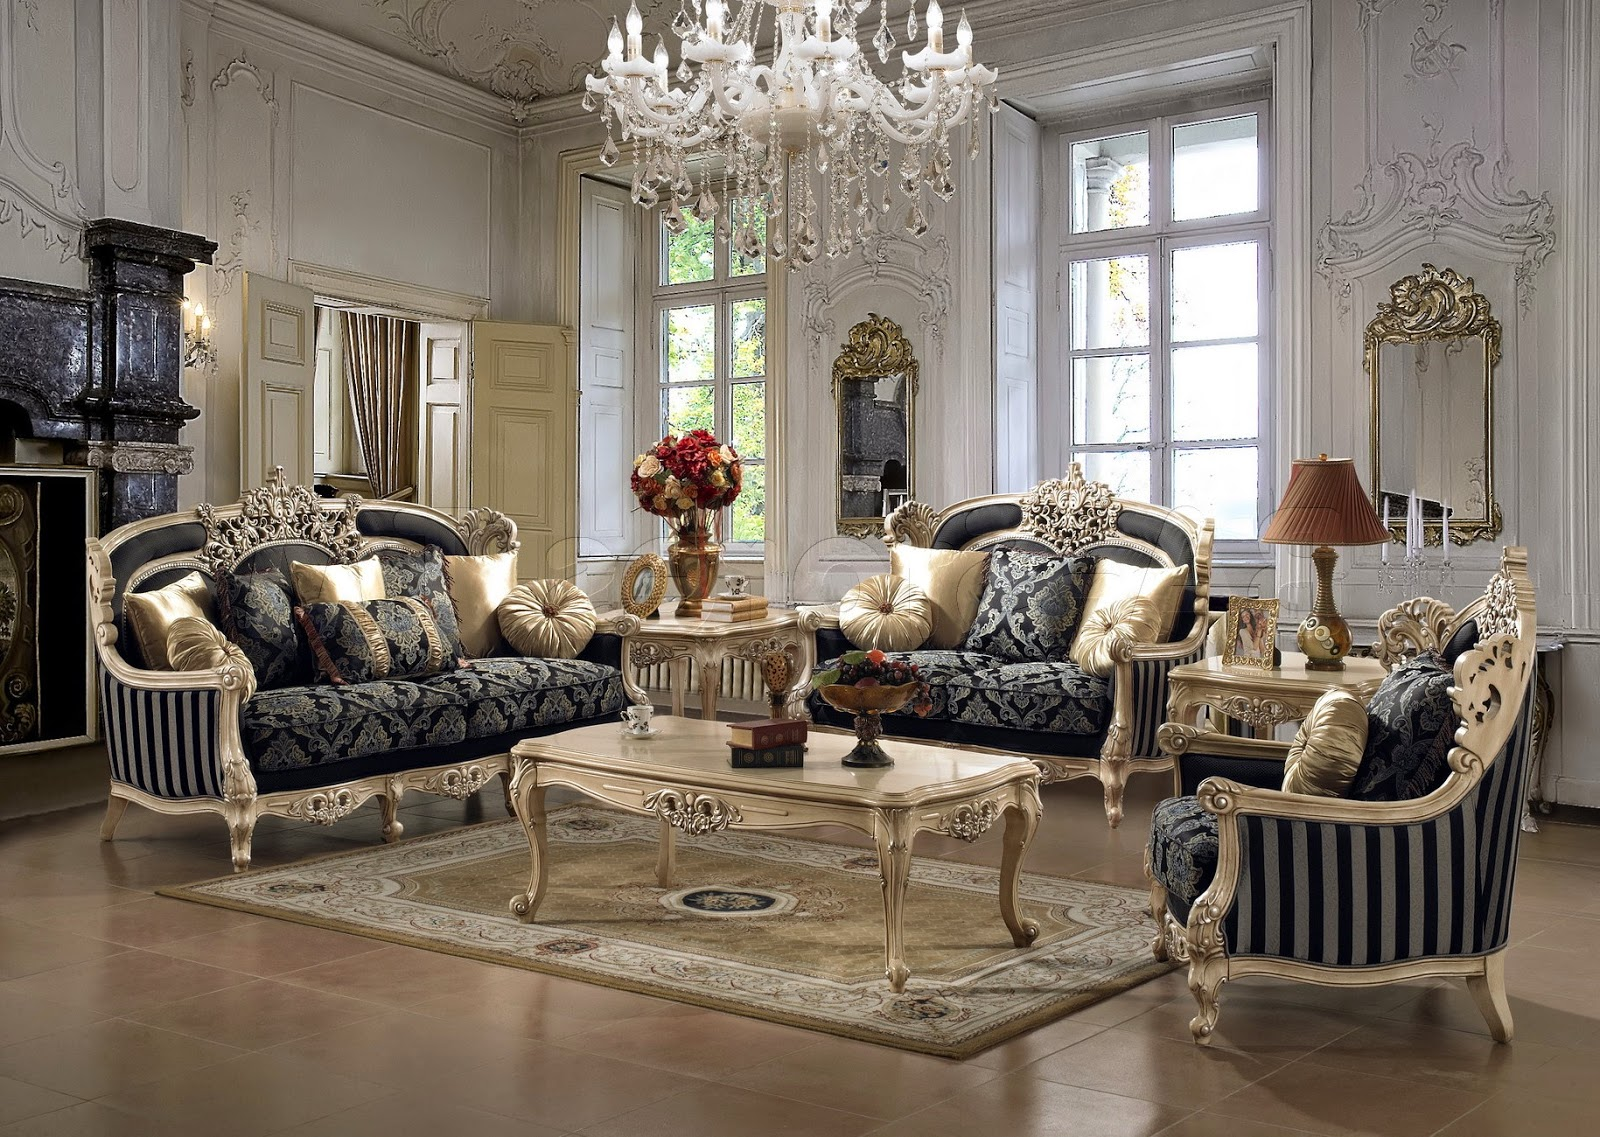 Traditional living room furniture stores - Rugs Decoration Living Room Decoration Style With Traditional Traditional Living Room Furniture Stores